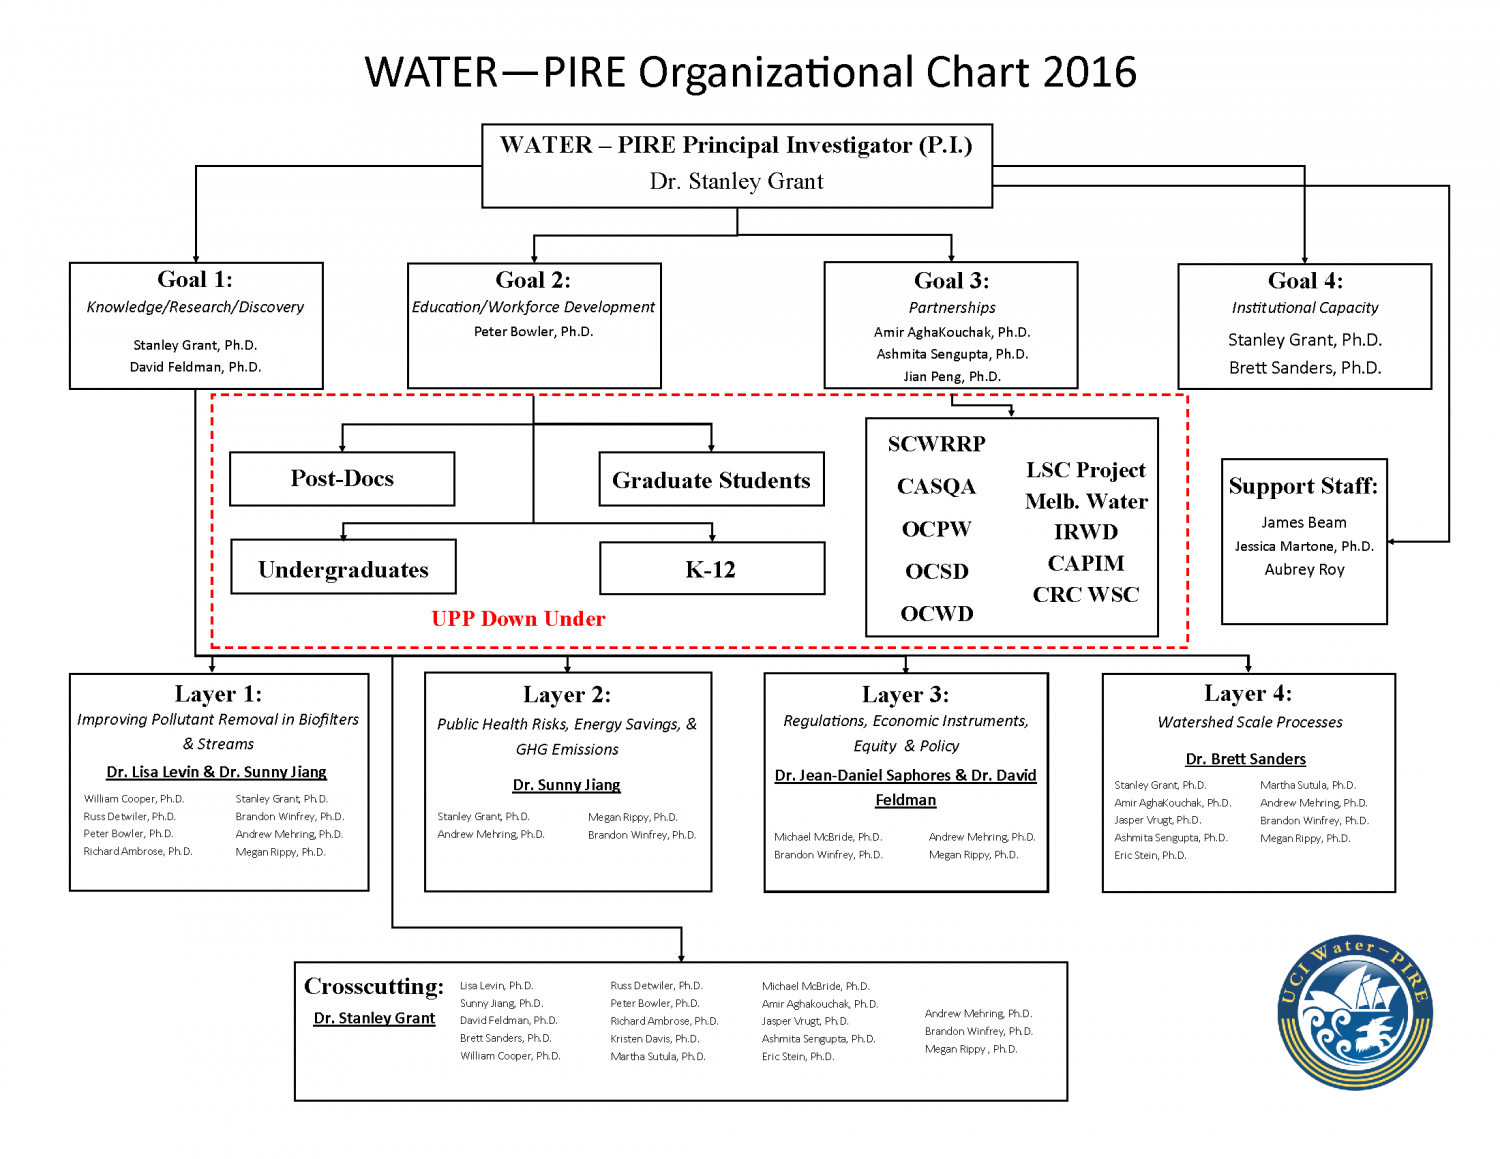 pire-org-chart-updated-09122016